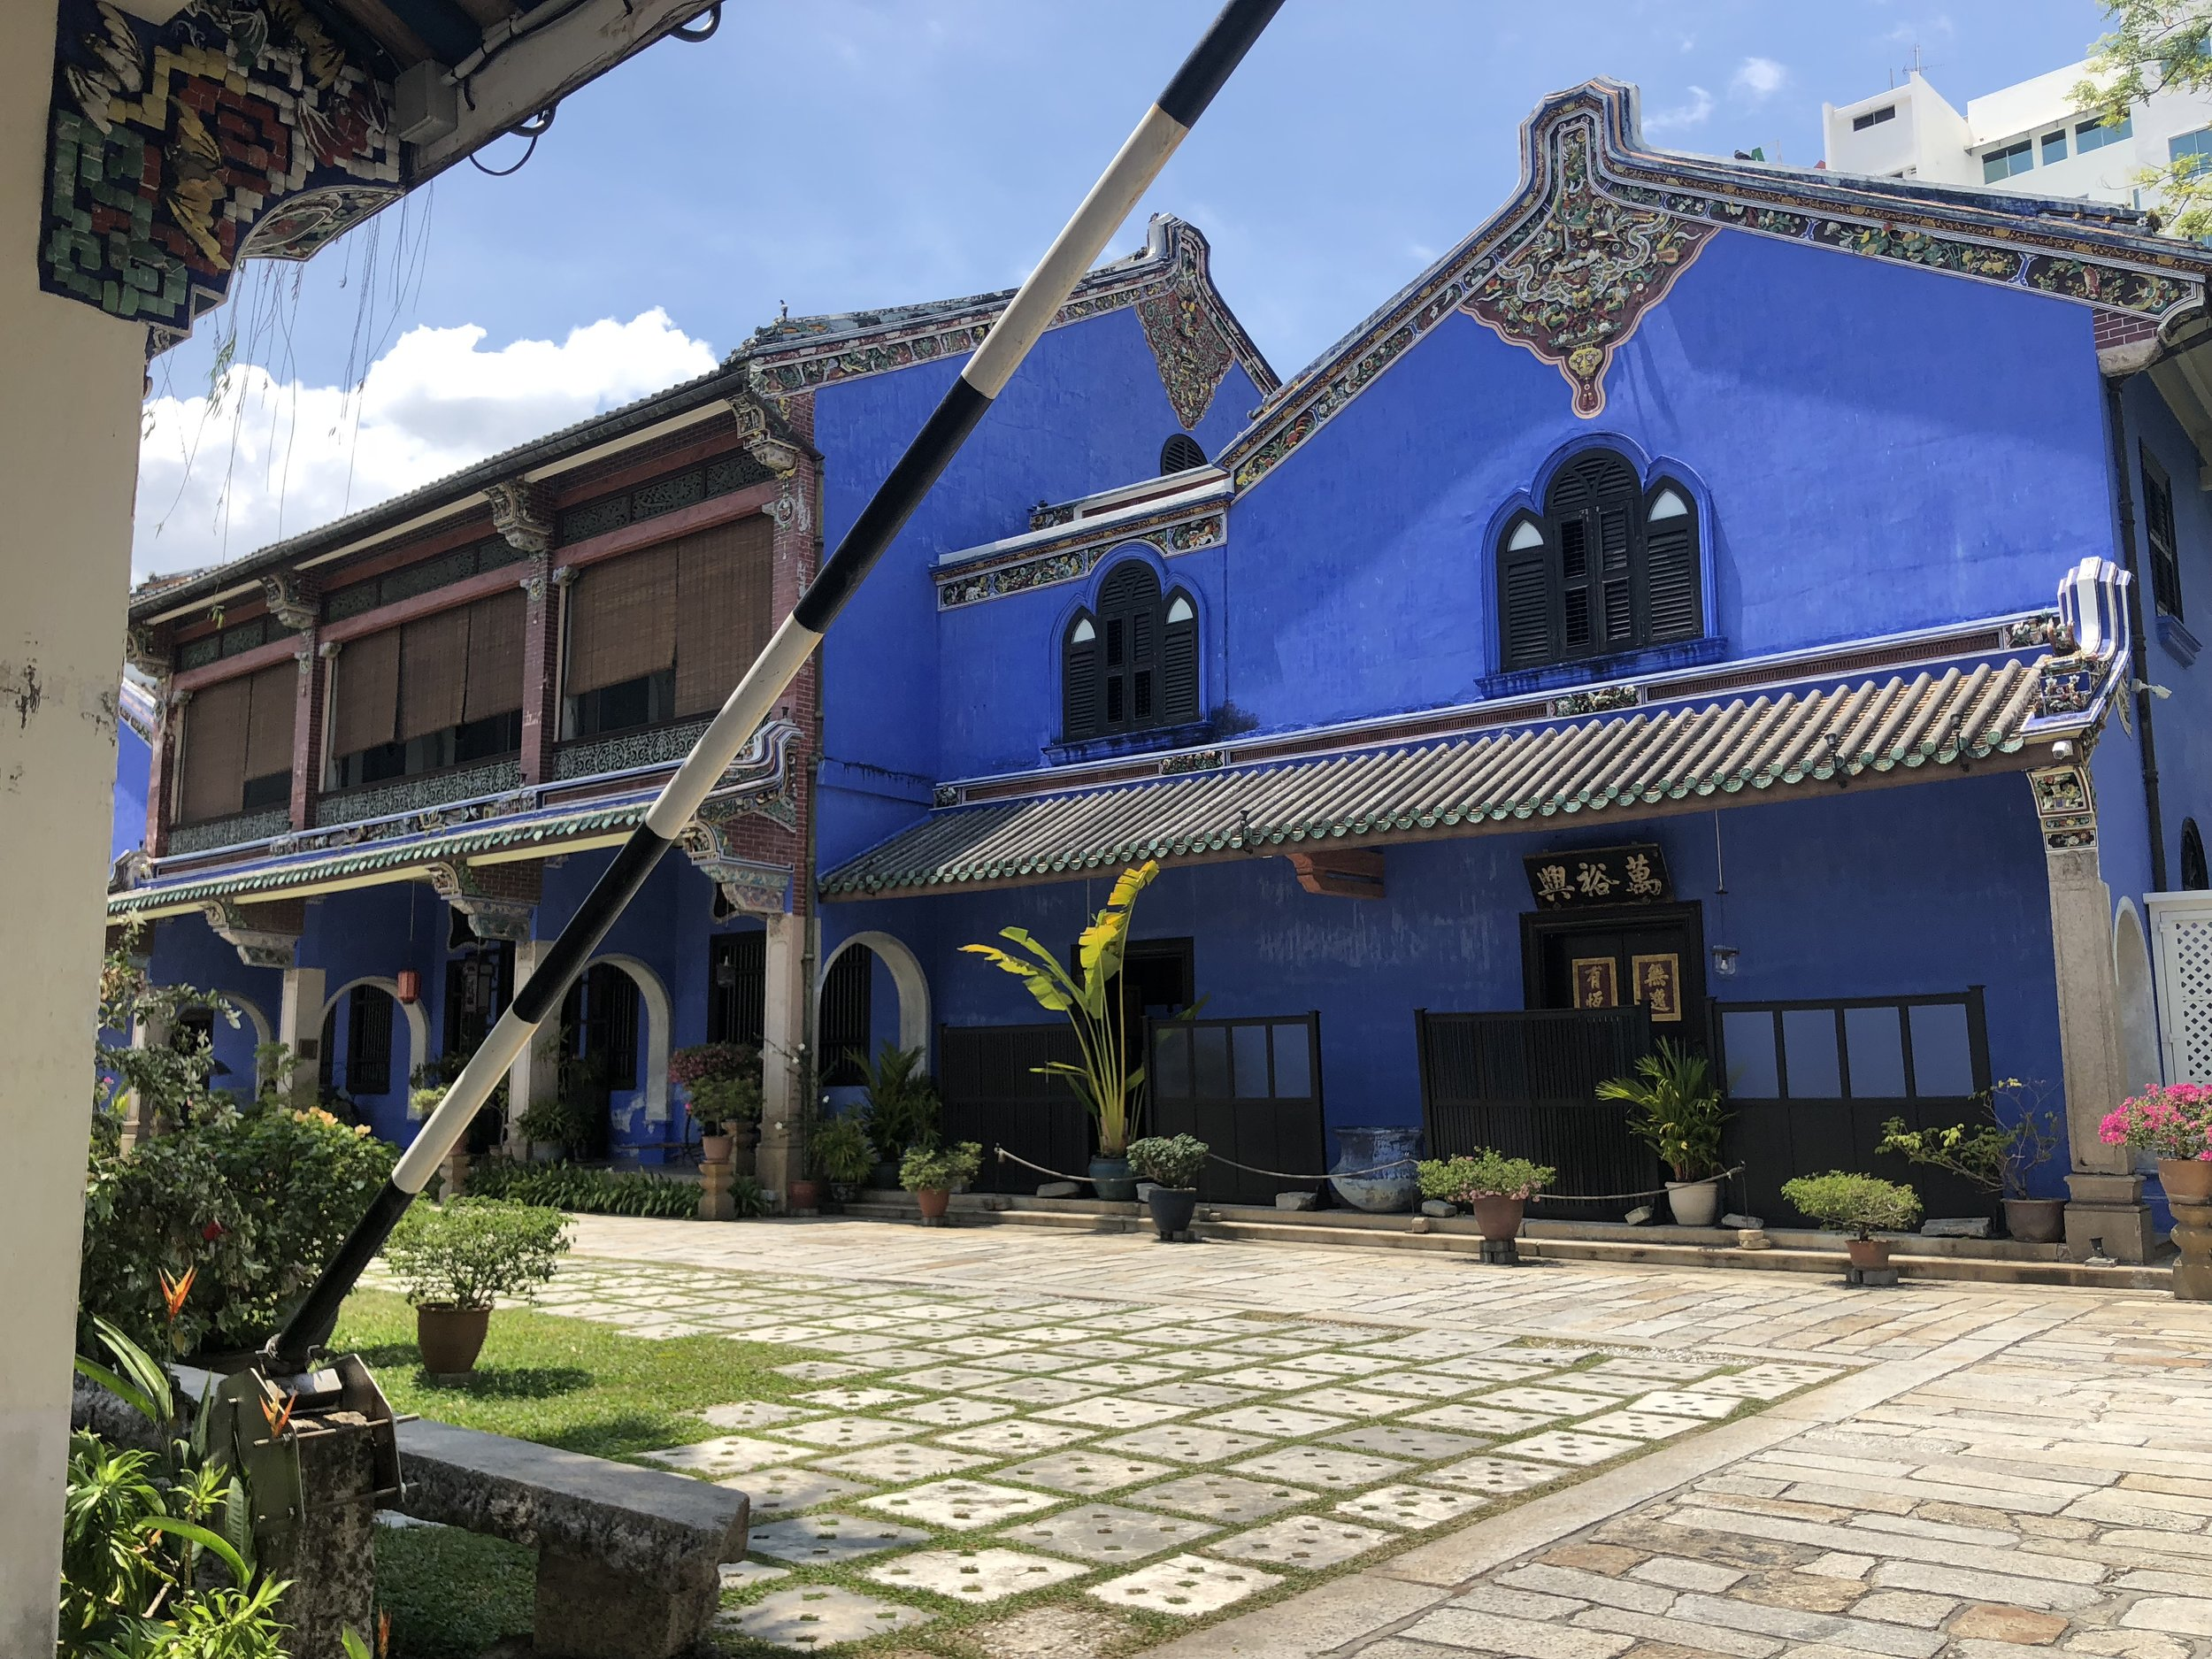 Cheong Fatt Tze Mansion, also known as the Blue Mansion, got its color from the Indigo plant.